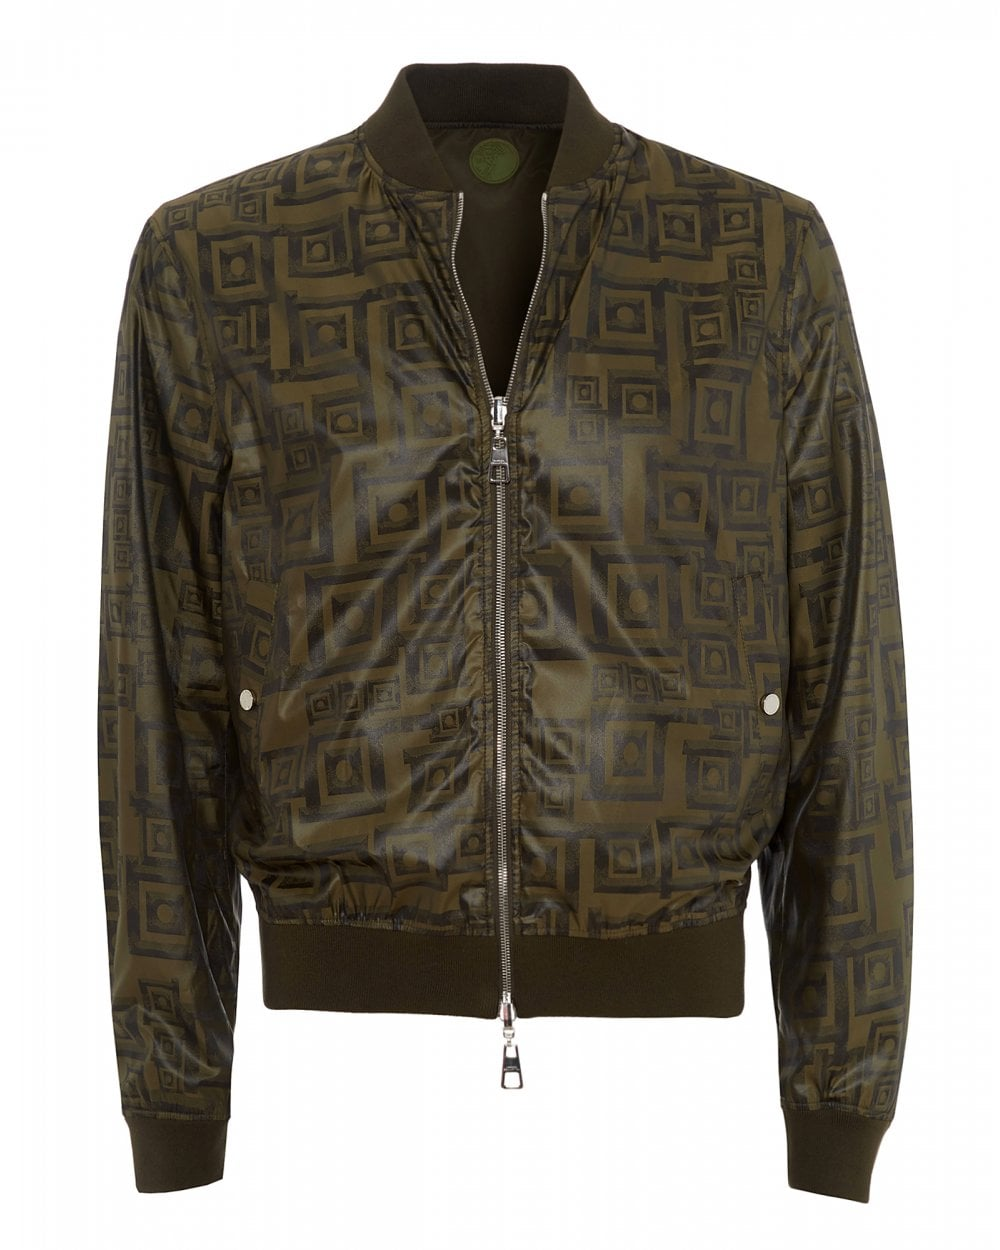 3b111b4399 Mens All Over Tile Bomber, Khaki Green Jacket